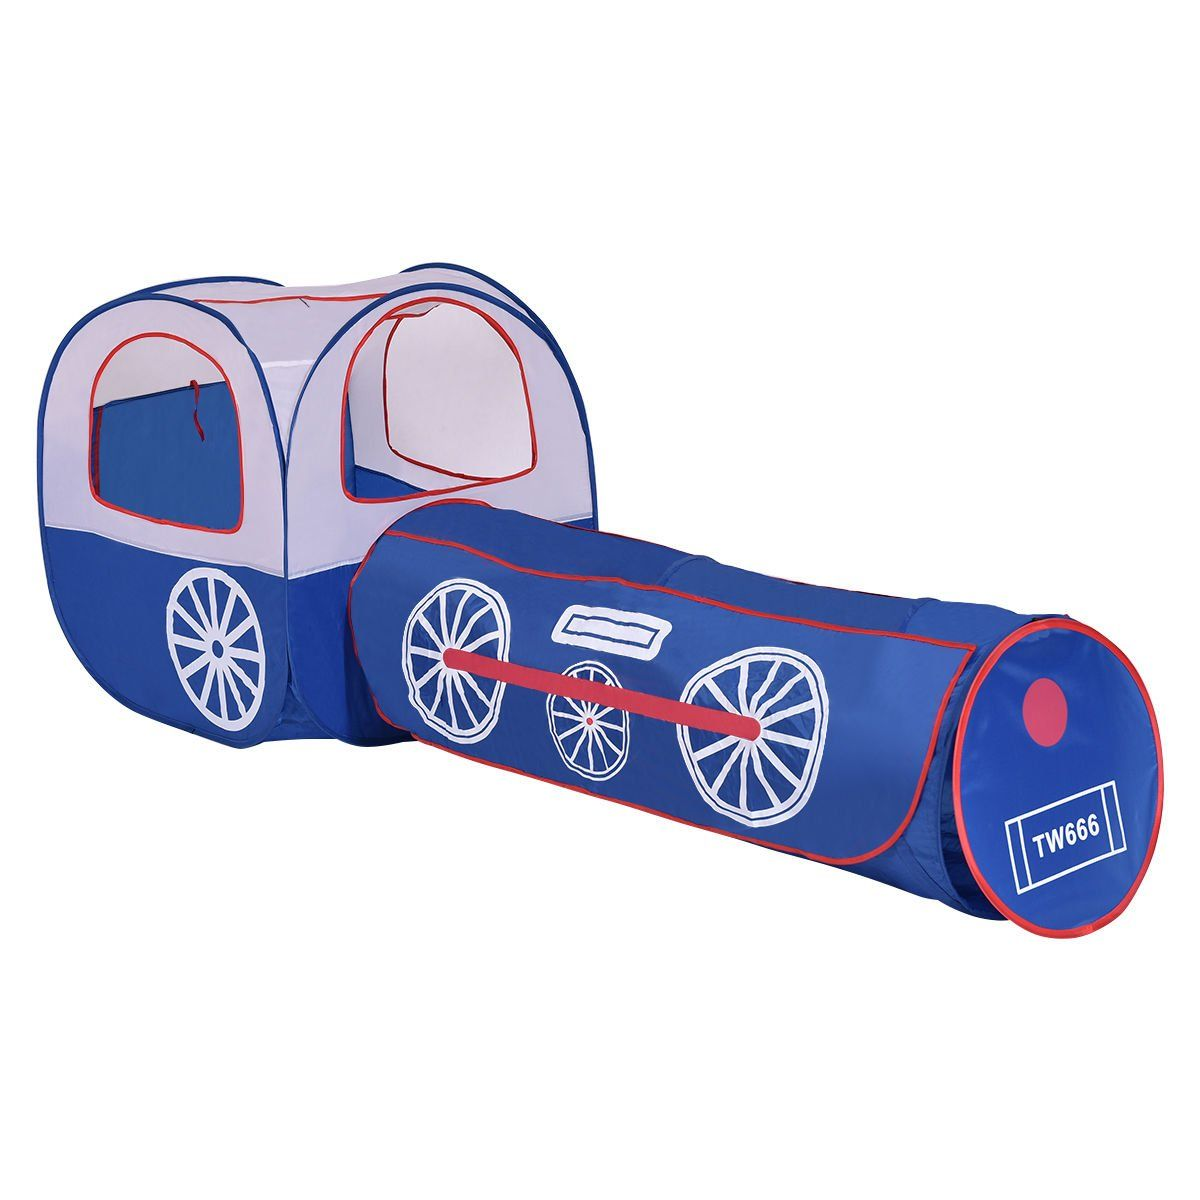 Costzon 2 In 1 Kids Tunnel House Pop-up Children Play Tent with Tunnel Tent and Zipper Storage Bag. Tent and tunnel can be used together or separately ...  sc 1 st  Pinterest & Costzon 2 In 1 Kids Tunnel House Pop-up Children Play Tent with ...